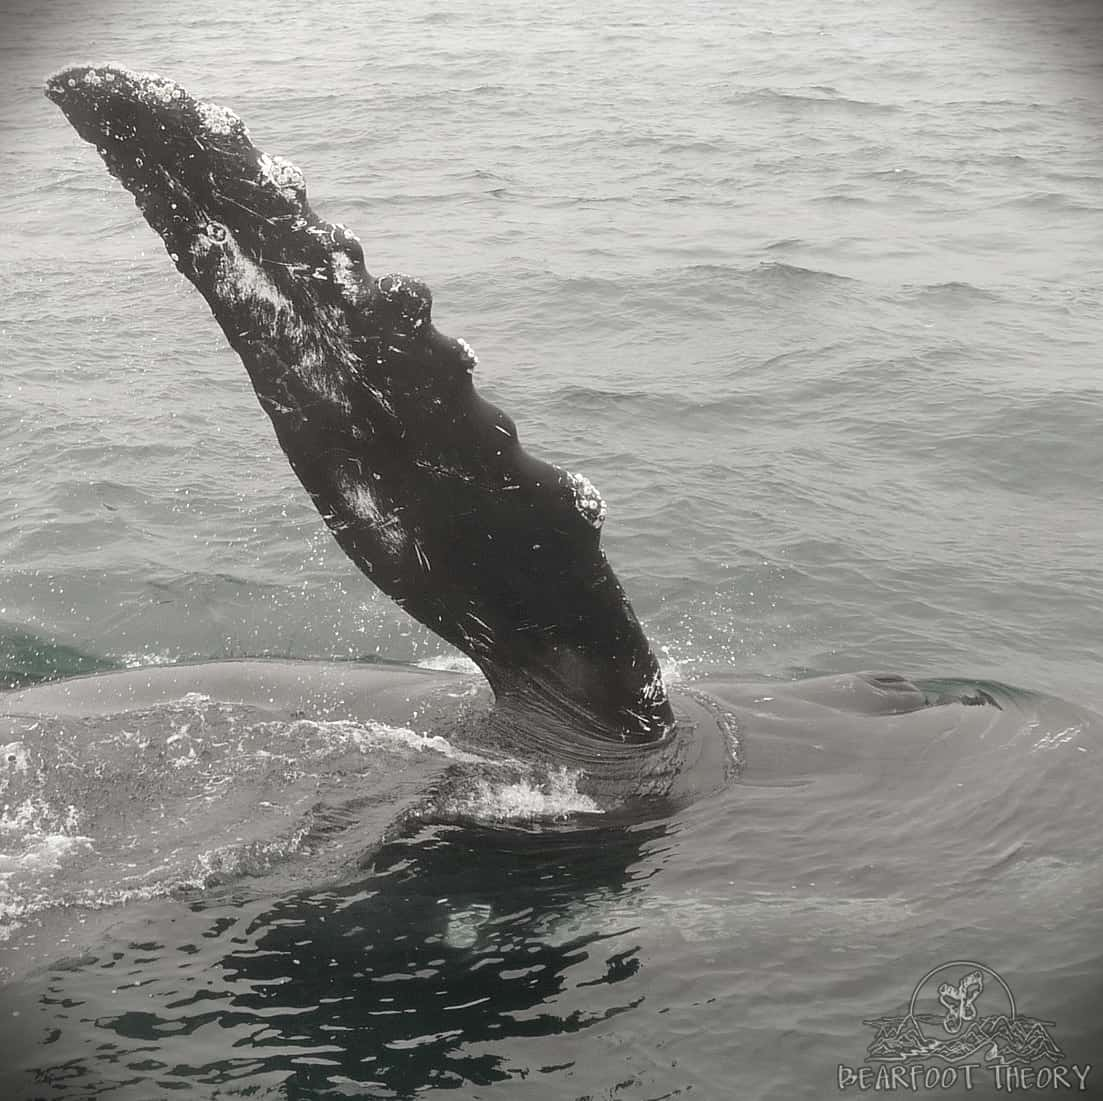 Whale Watching at Channel Islands National Park